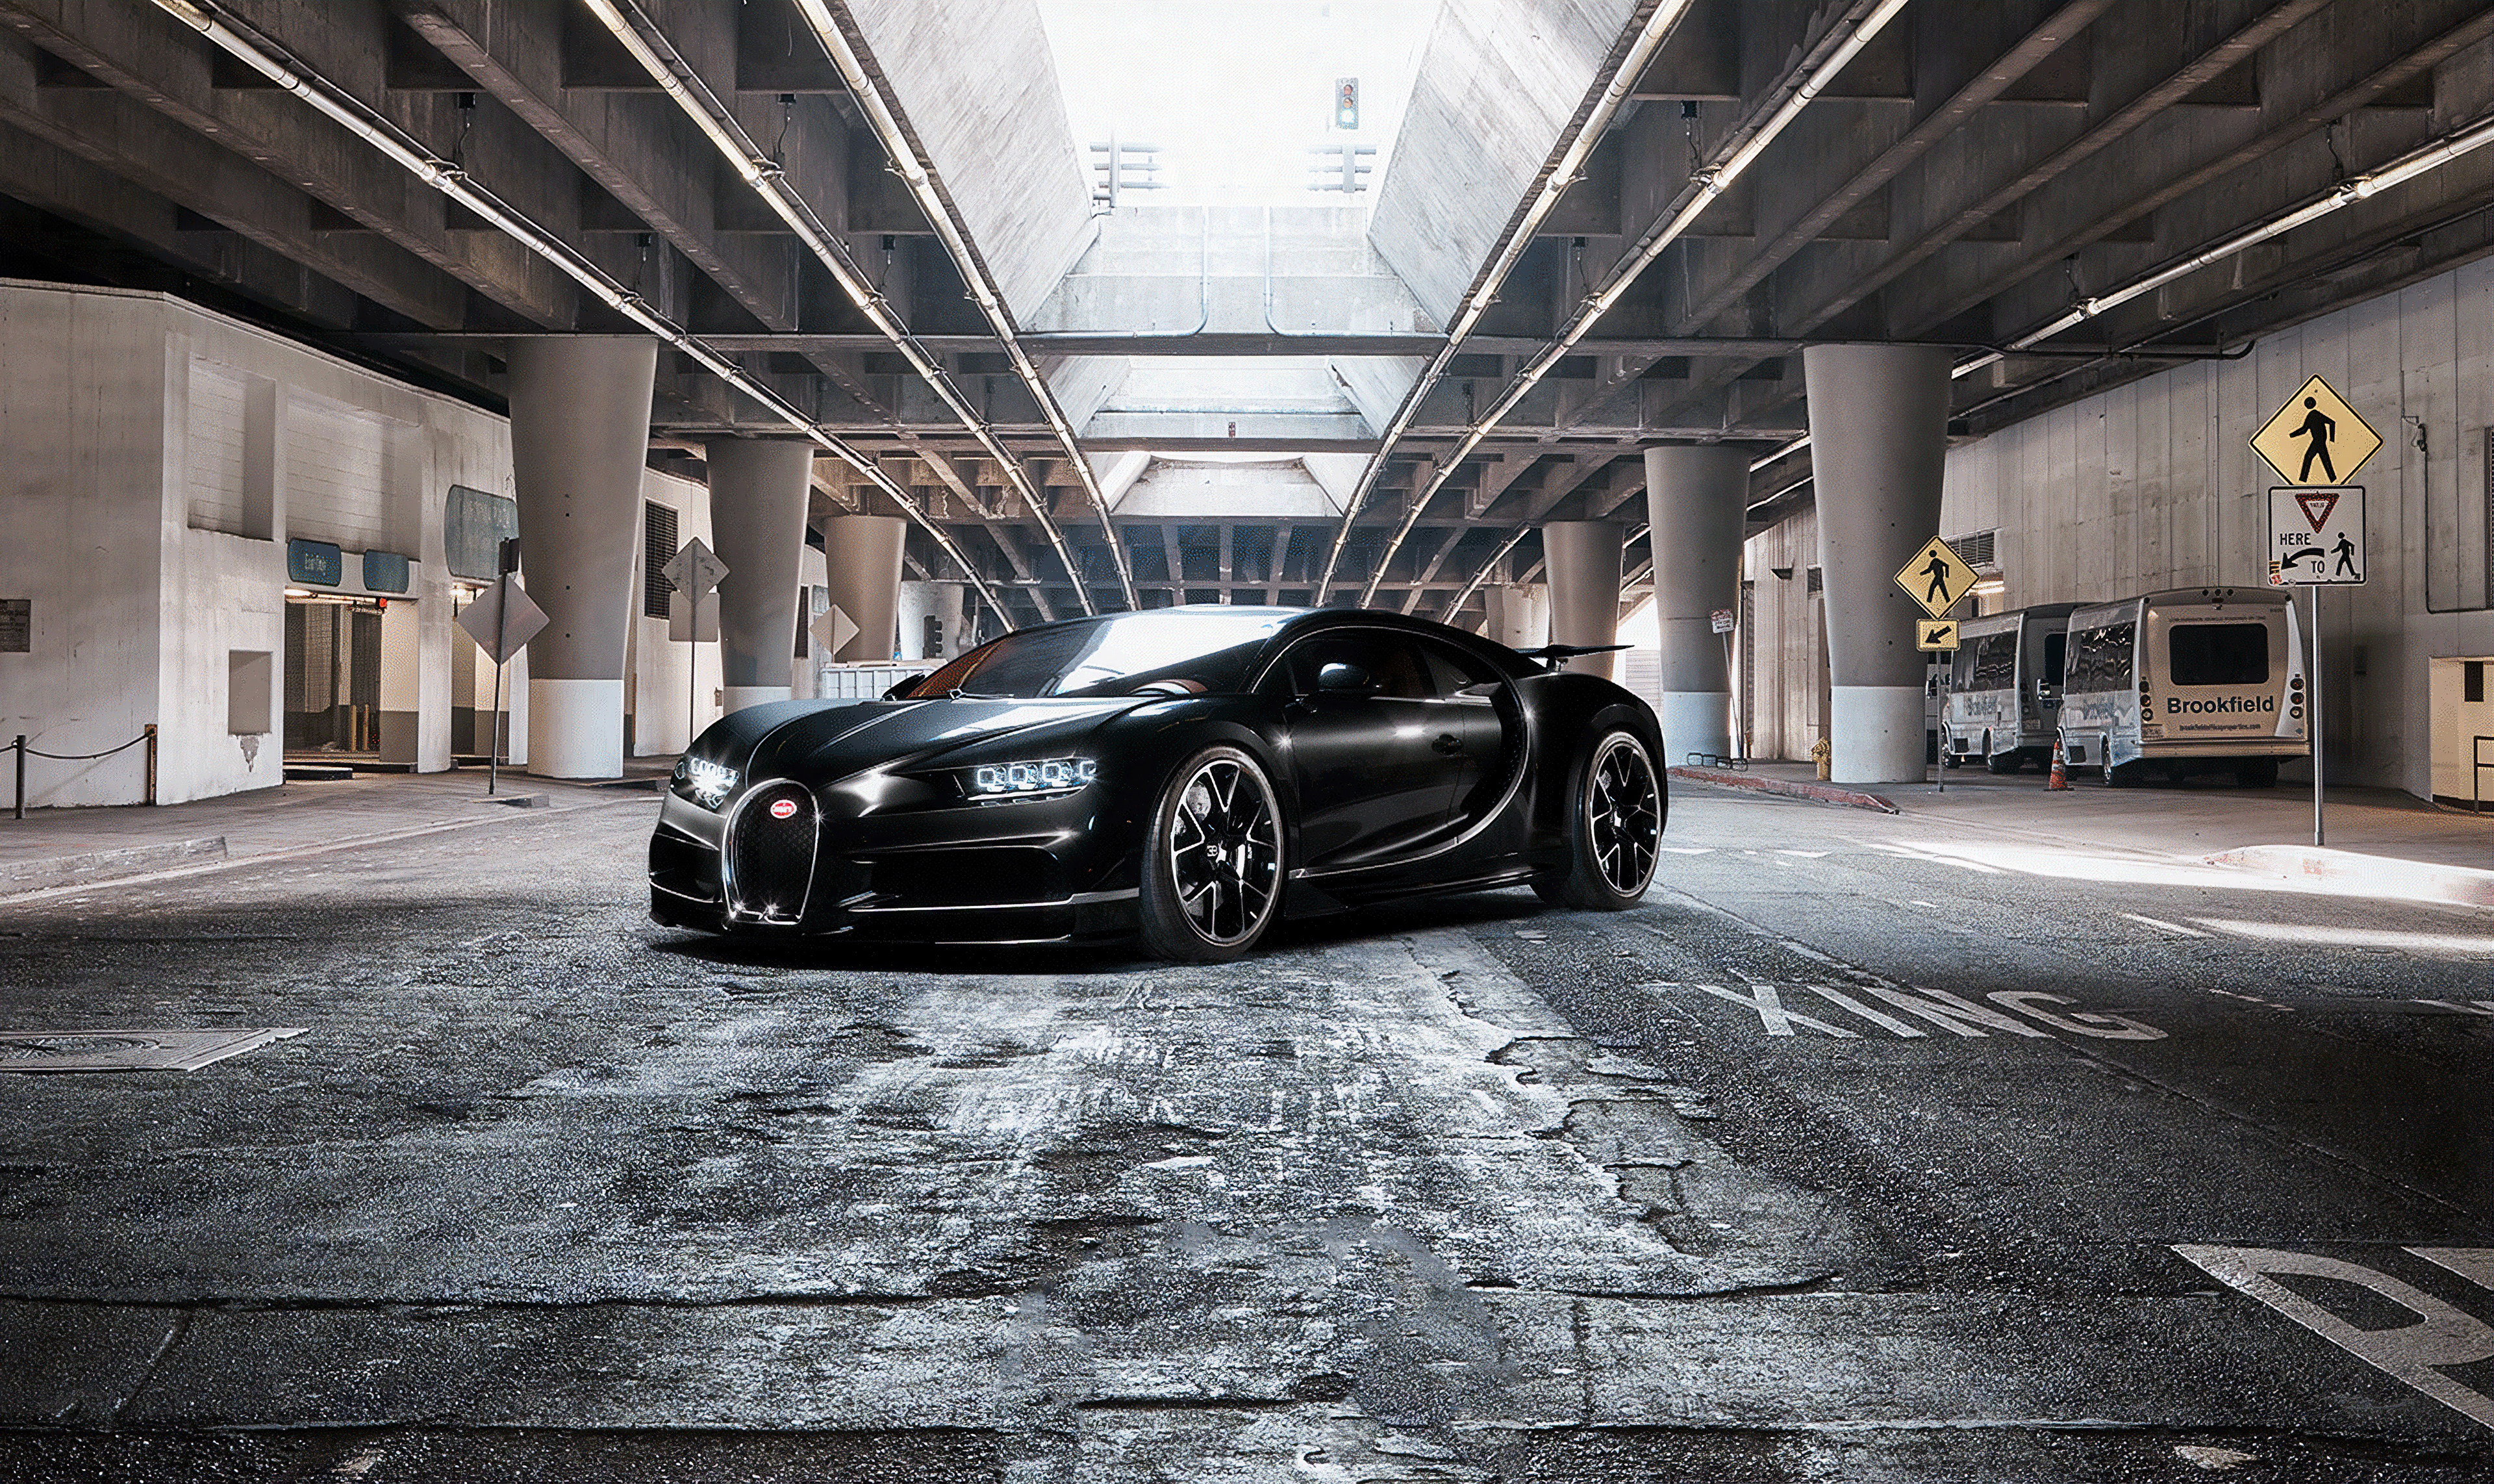 2560x1440 4k Bugatti Chiron 1440p Resolution Hd 4k Wallpapers Images Backgrounds Photos And Pictures